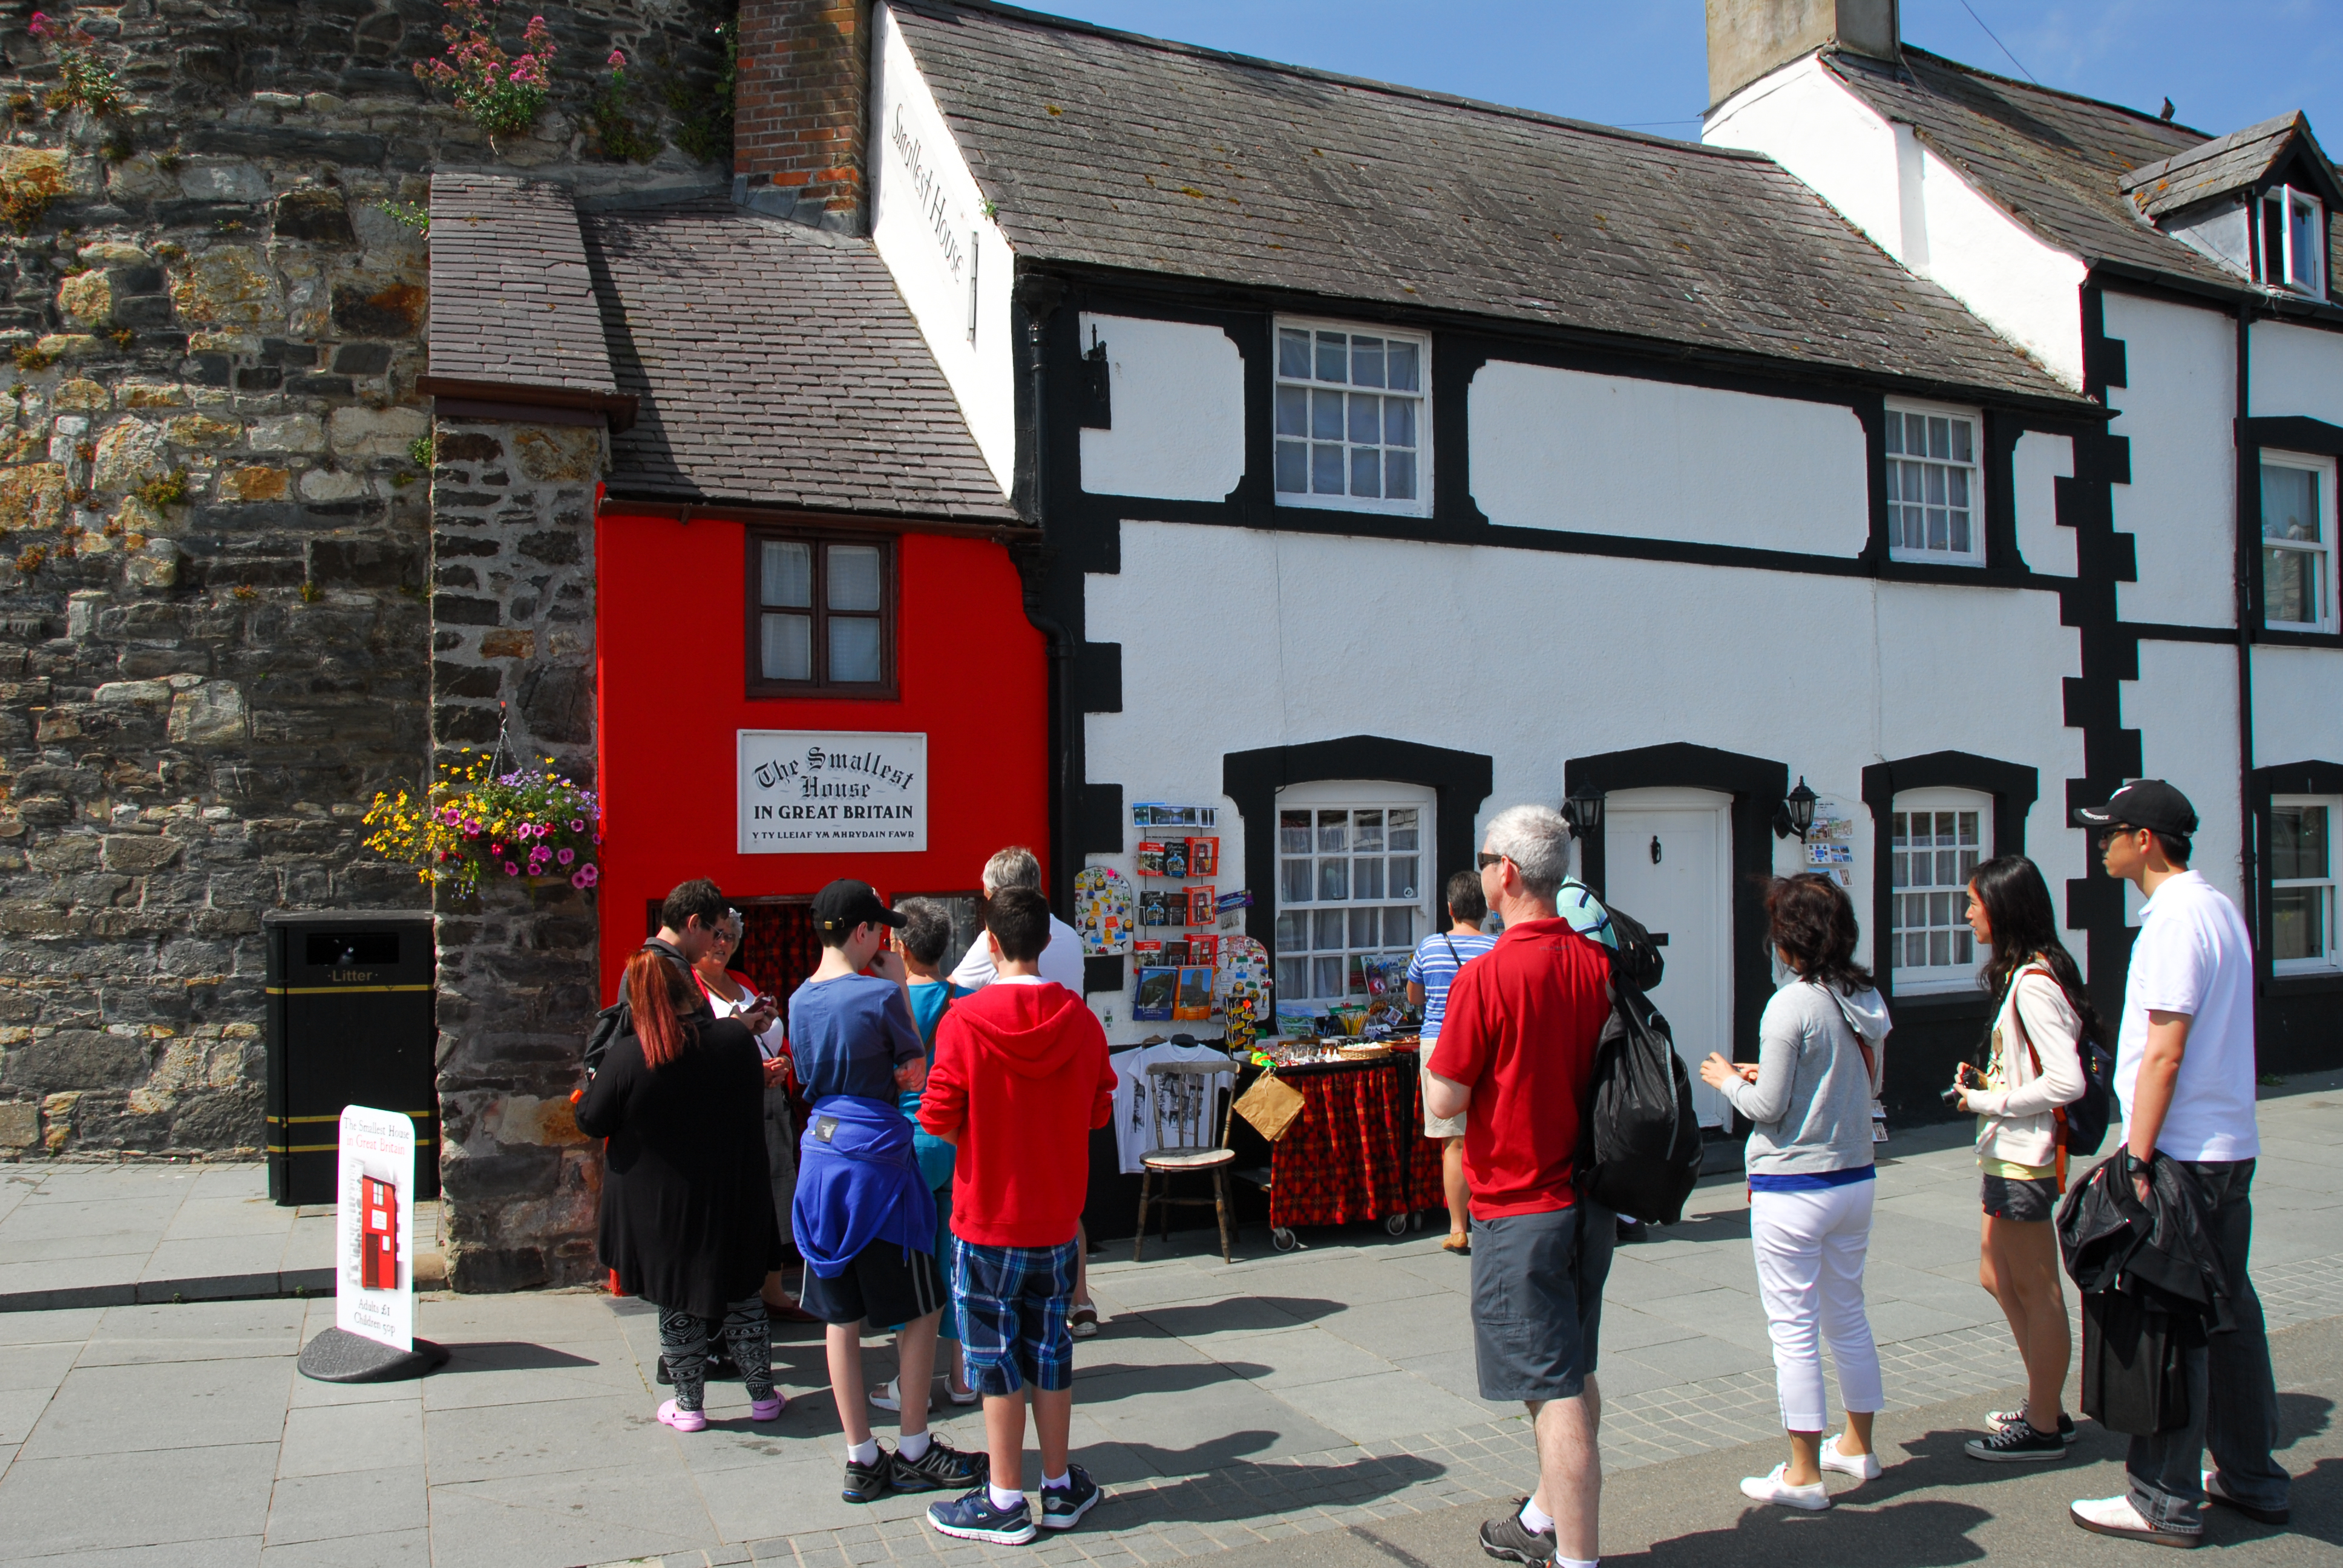 The smallest house in Conwy